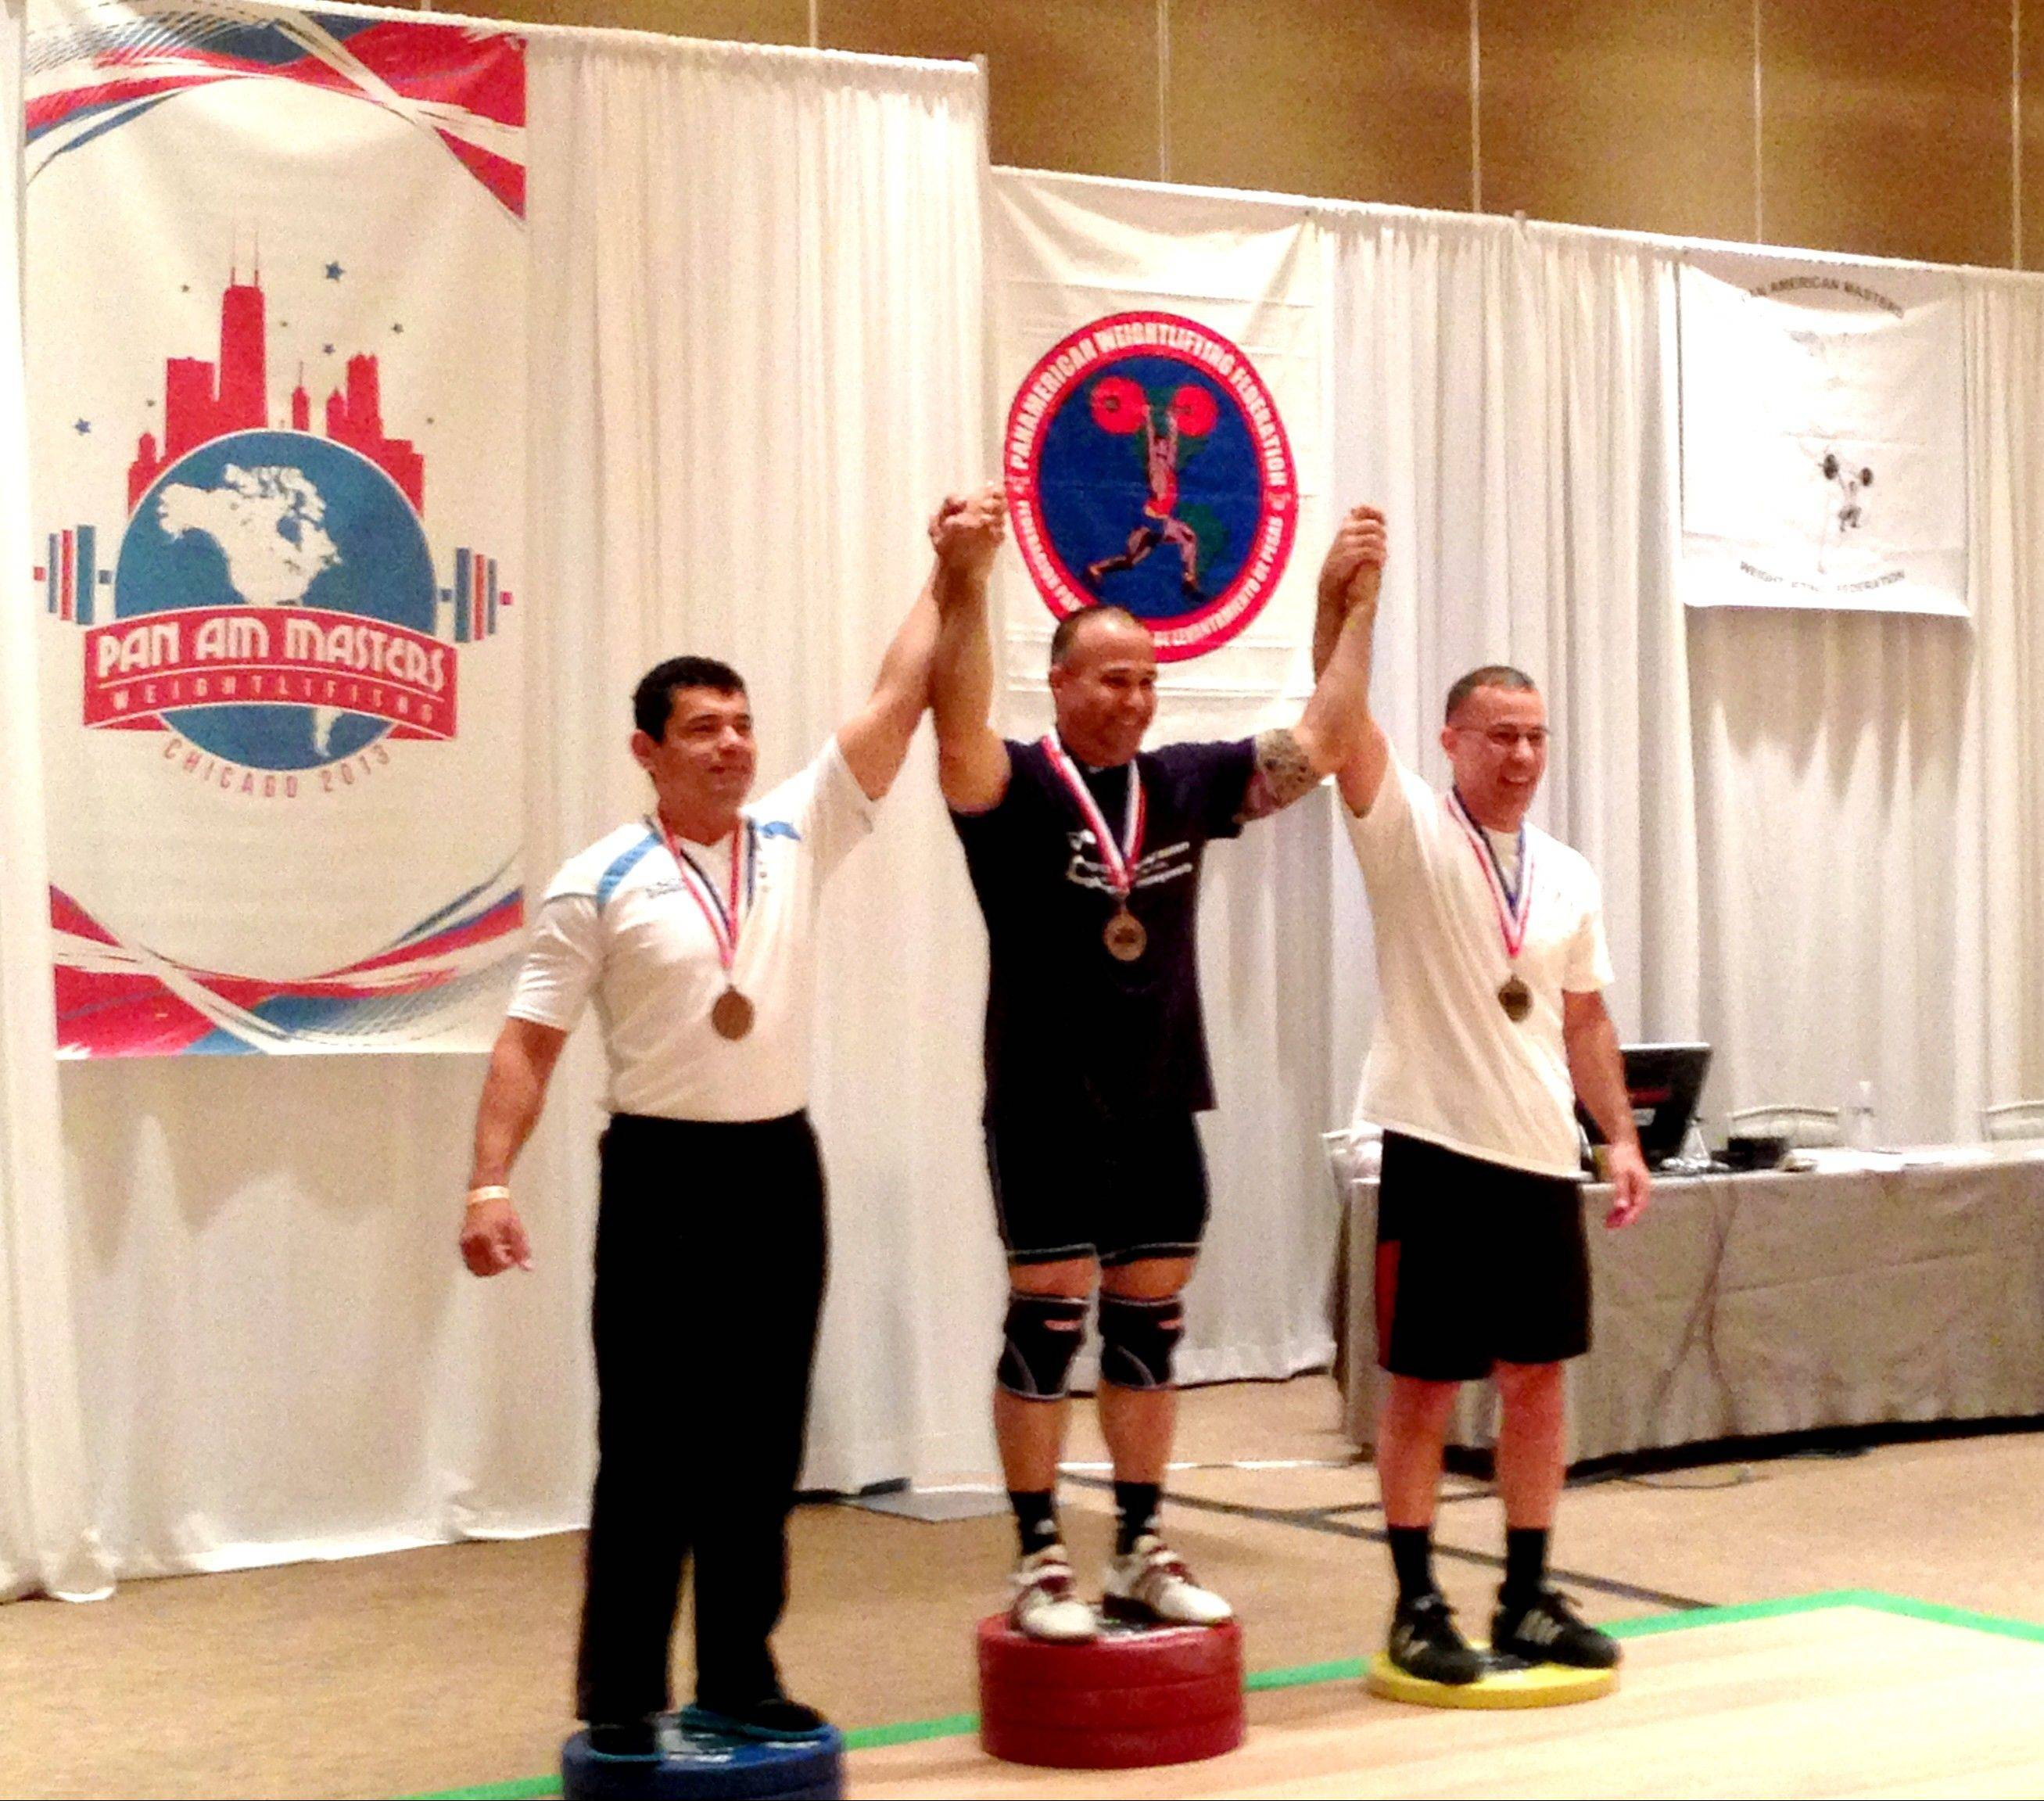 American Robert Arroyo, center, set three records at the 2013 PanAm Masters Weightlifting Championships Sunday morning. Joining him on the podium were Jose Reyes, left, and Jeff Tincher, right.